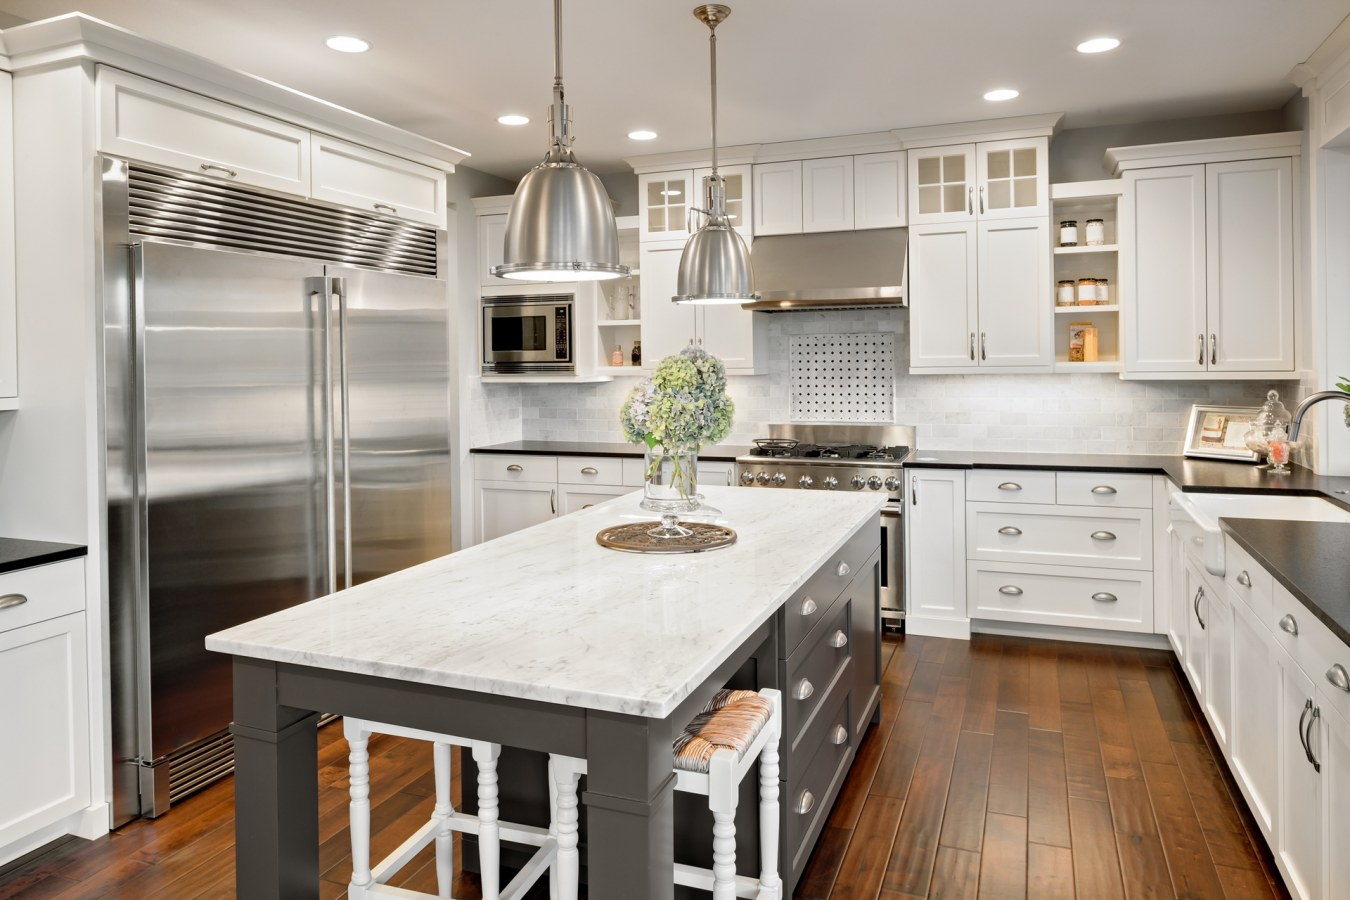 Bayut Recommends Redesigning Your Lighting To Make Your Kitchen Space Better Looking